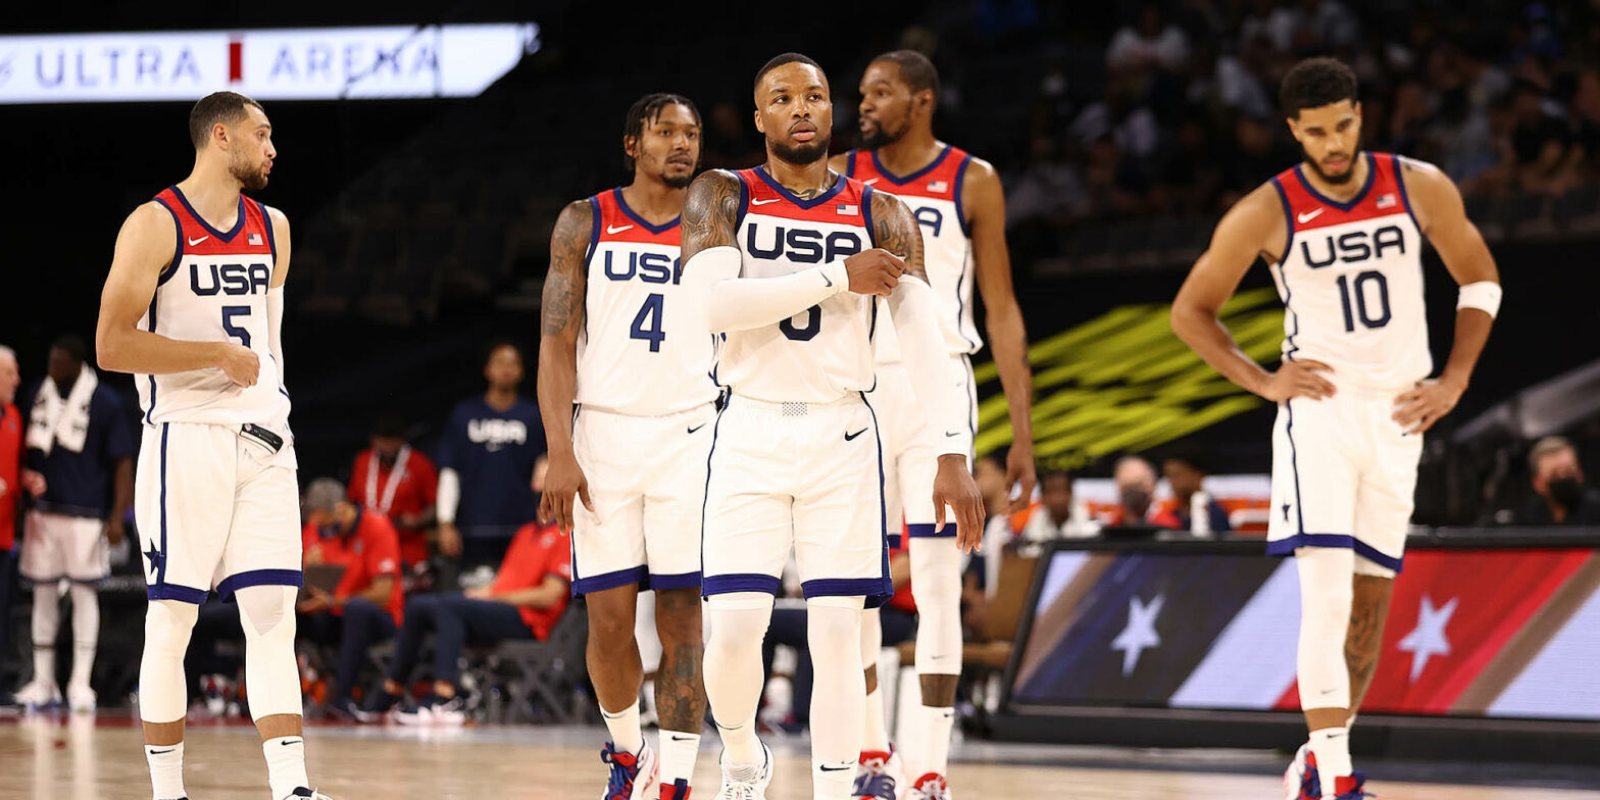 US men's basketball team stunned by 'humiliating' Olympics defeat to France